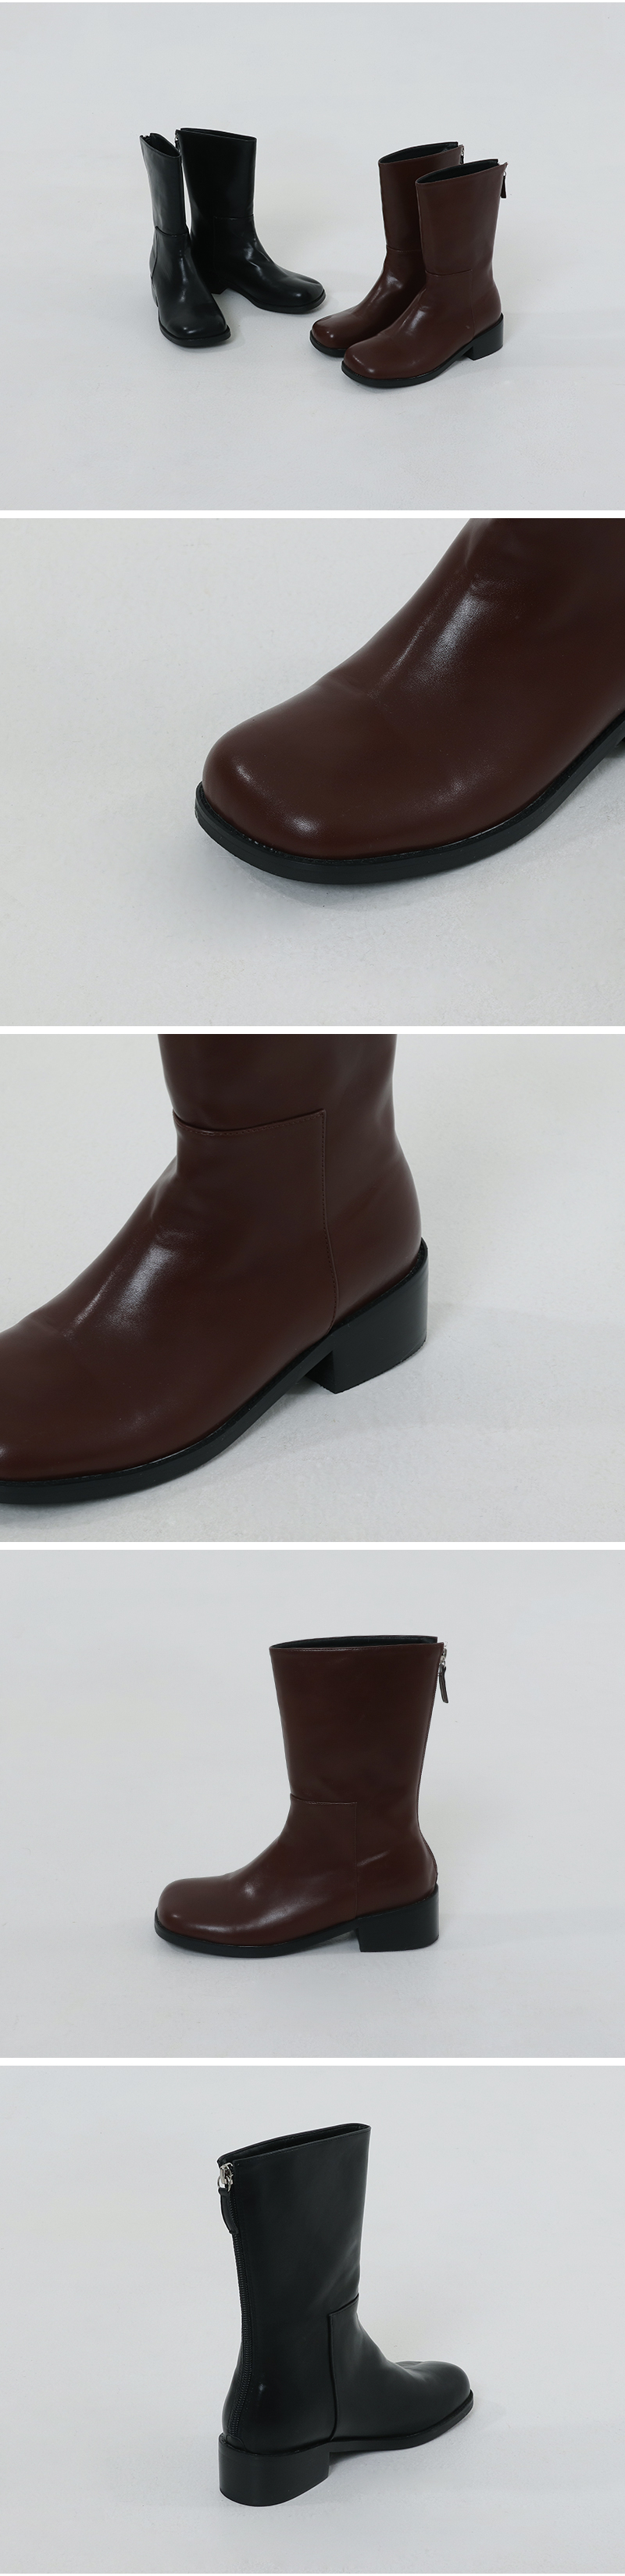 Another Square Middle Boots